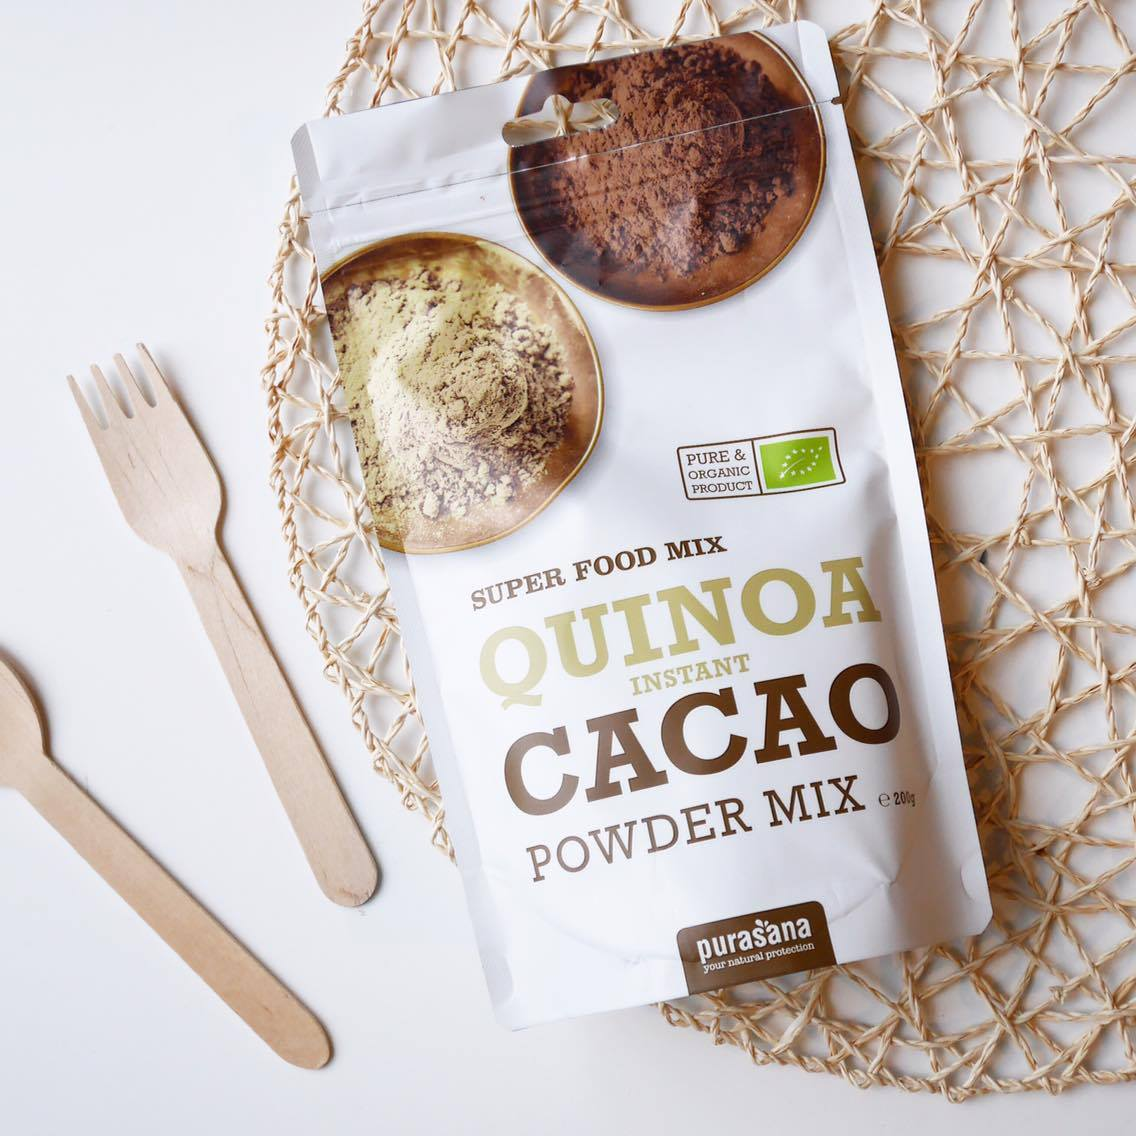 Superfood mix Quinoa Cacao